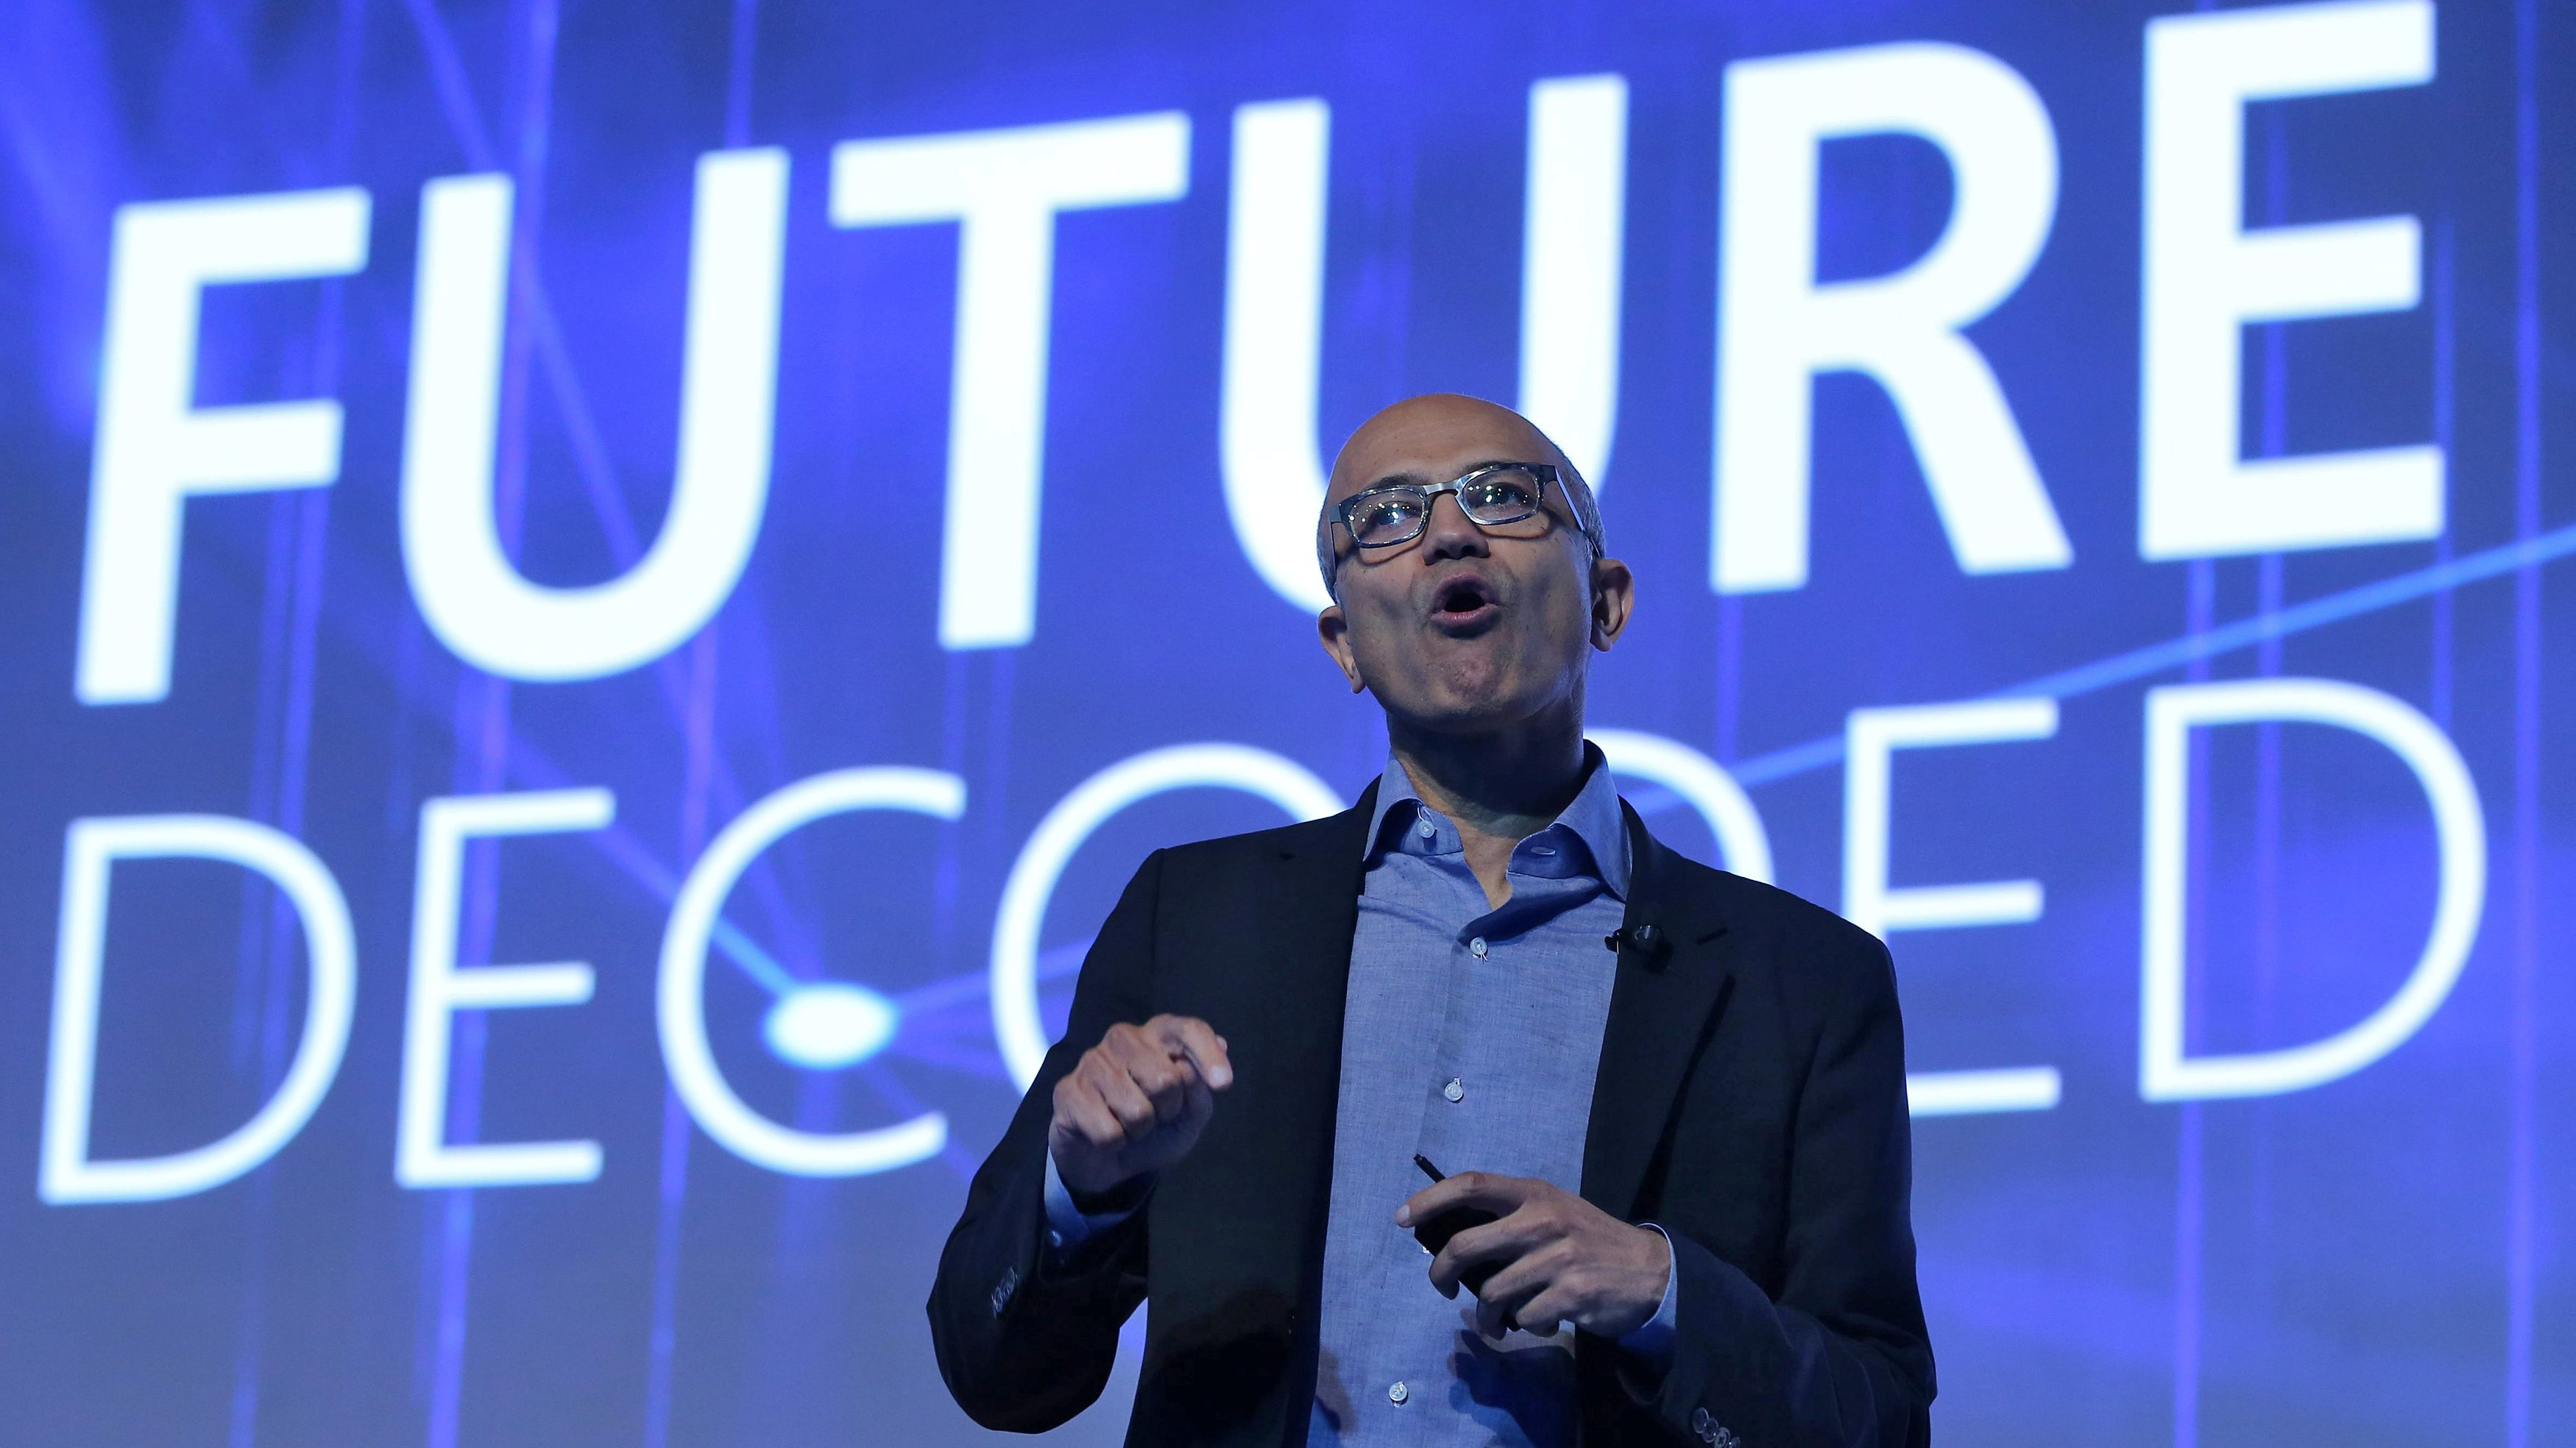 Microsoft CEO Satya Nadella speaks at the Future Decoded conference in Mumbai